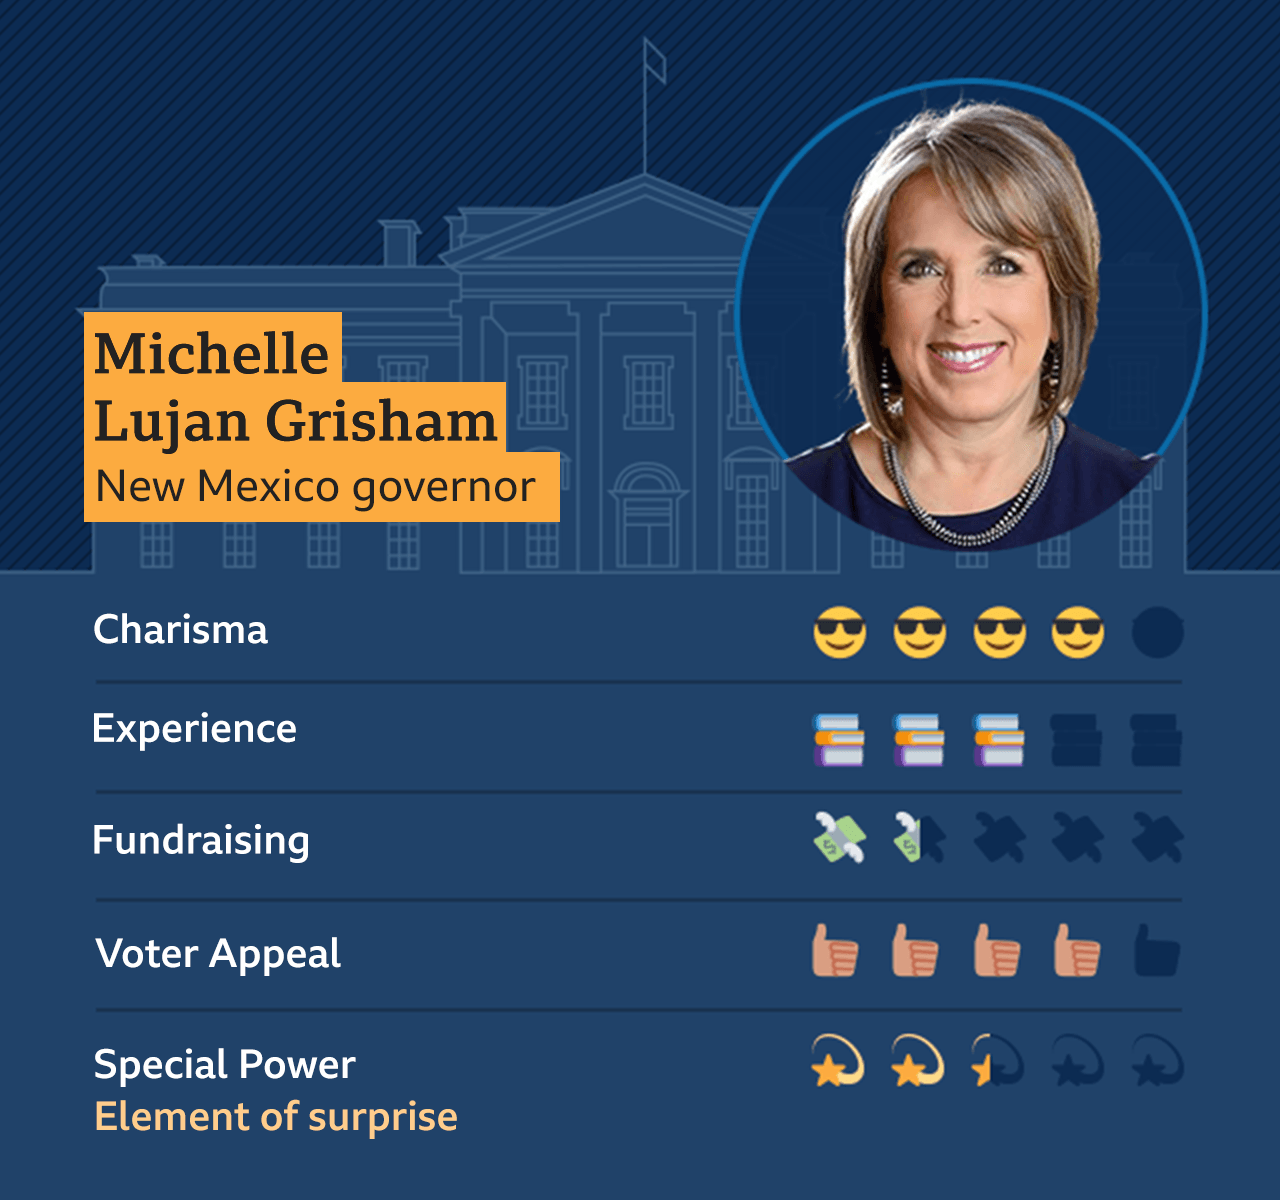 Graphic of Michelle Lujan Grisham, New Mexico governor: Charisma - 4, Experience - 3, Fundraising - 1.5, Voter appeal - 4, Special Power - Element of surprise - 2.5